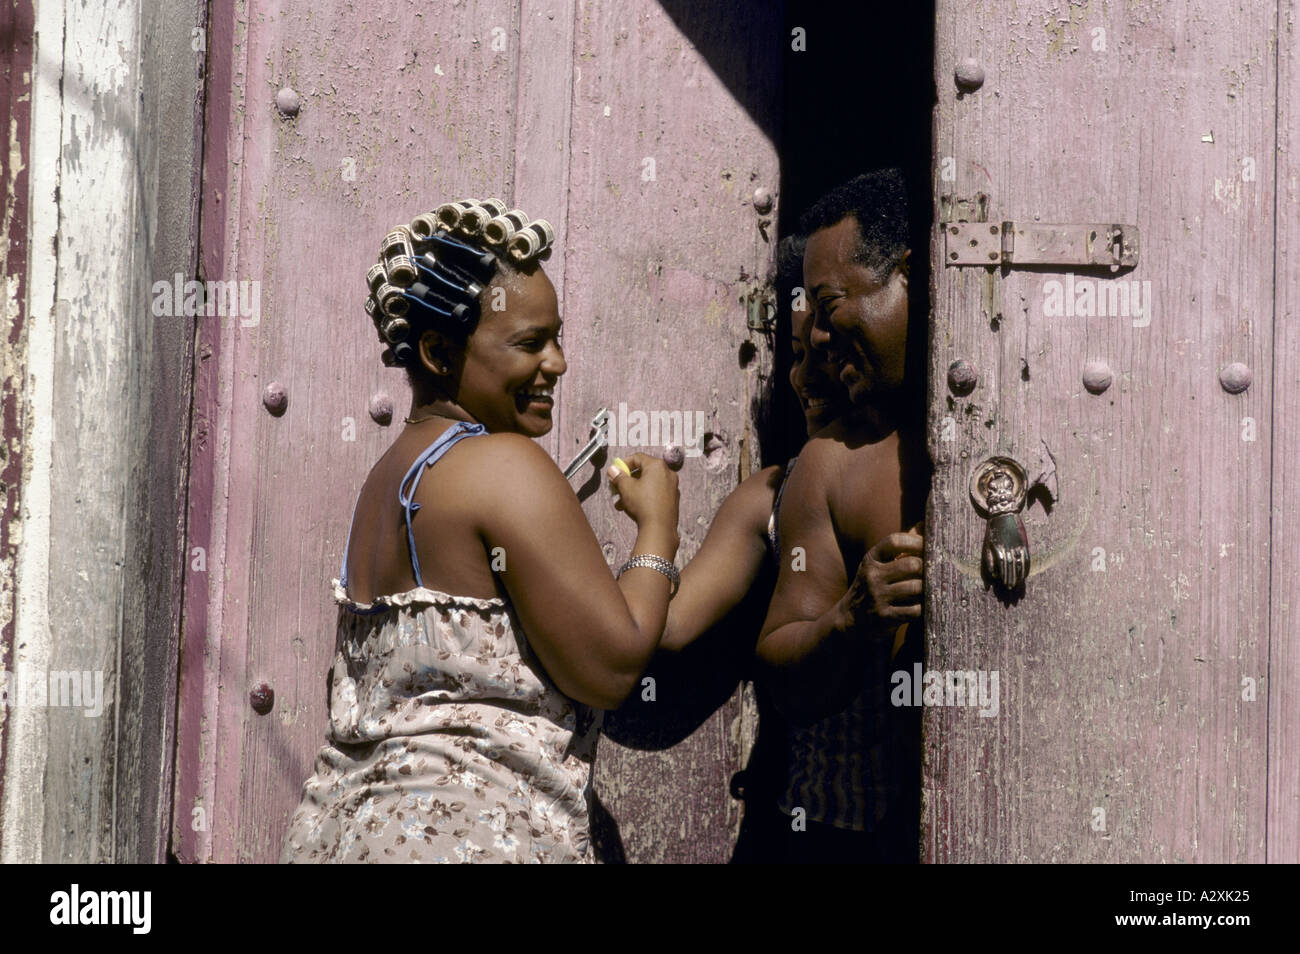 Woman with curlers in her hair having a laugh with a man on their front door in 'Old Town', Havana, Cuba - Stock Image